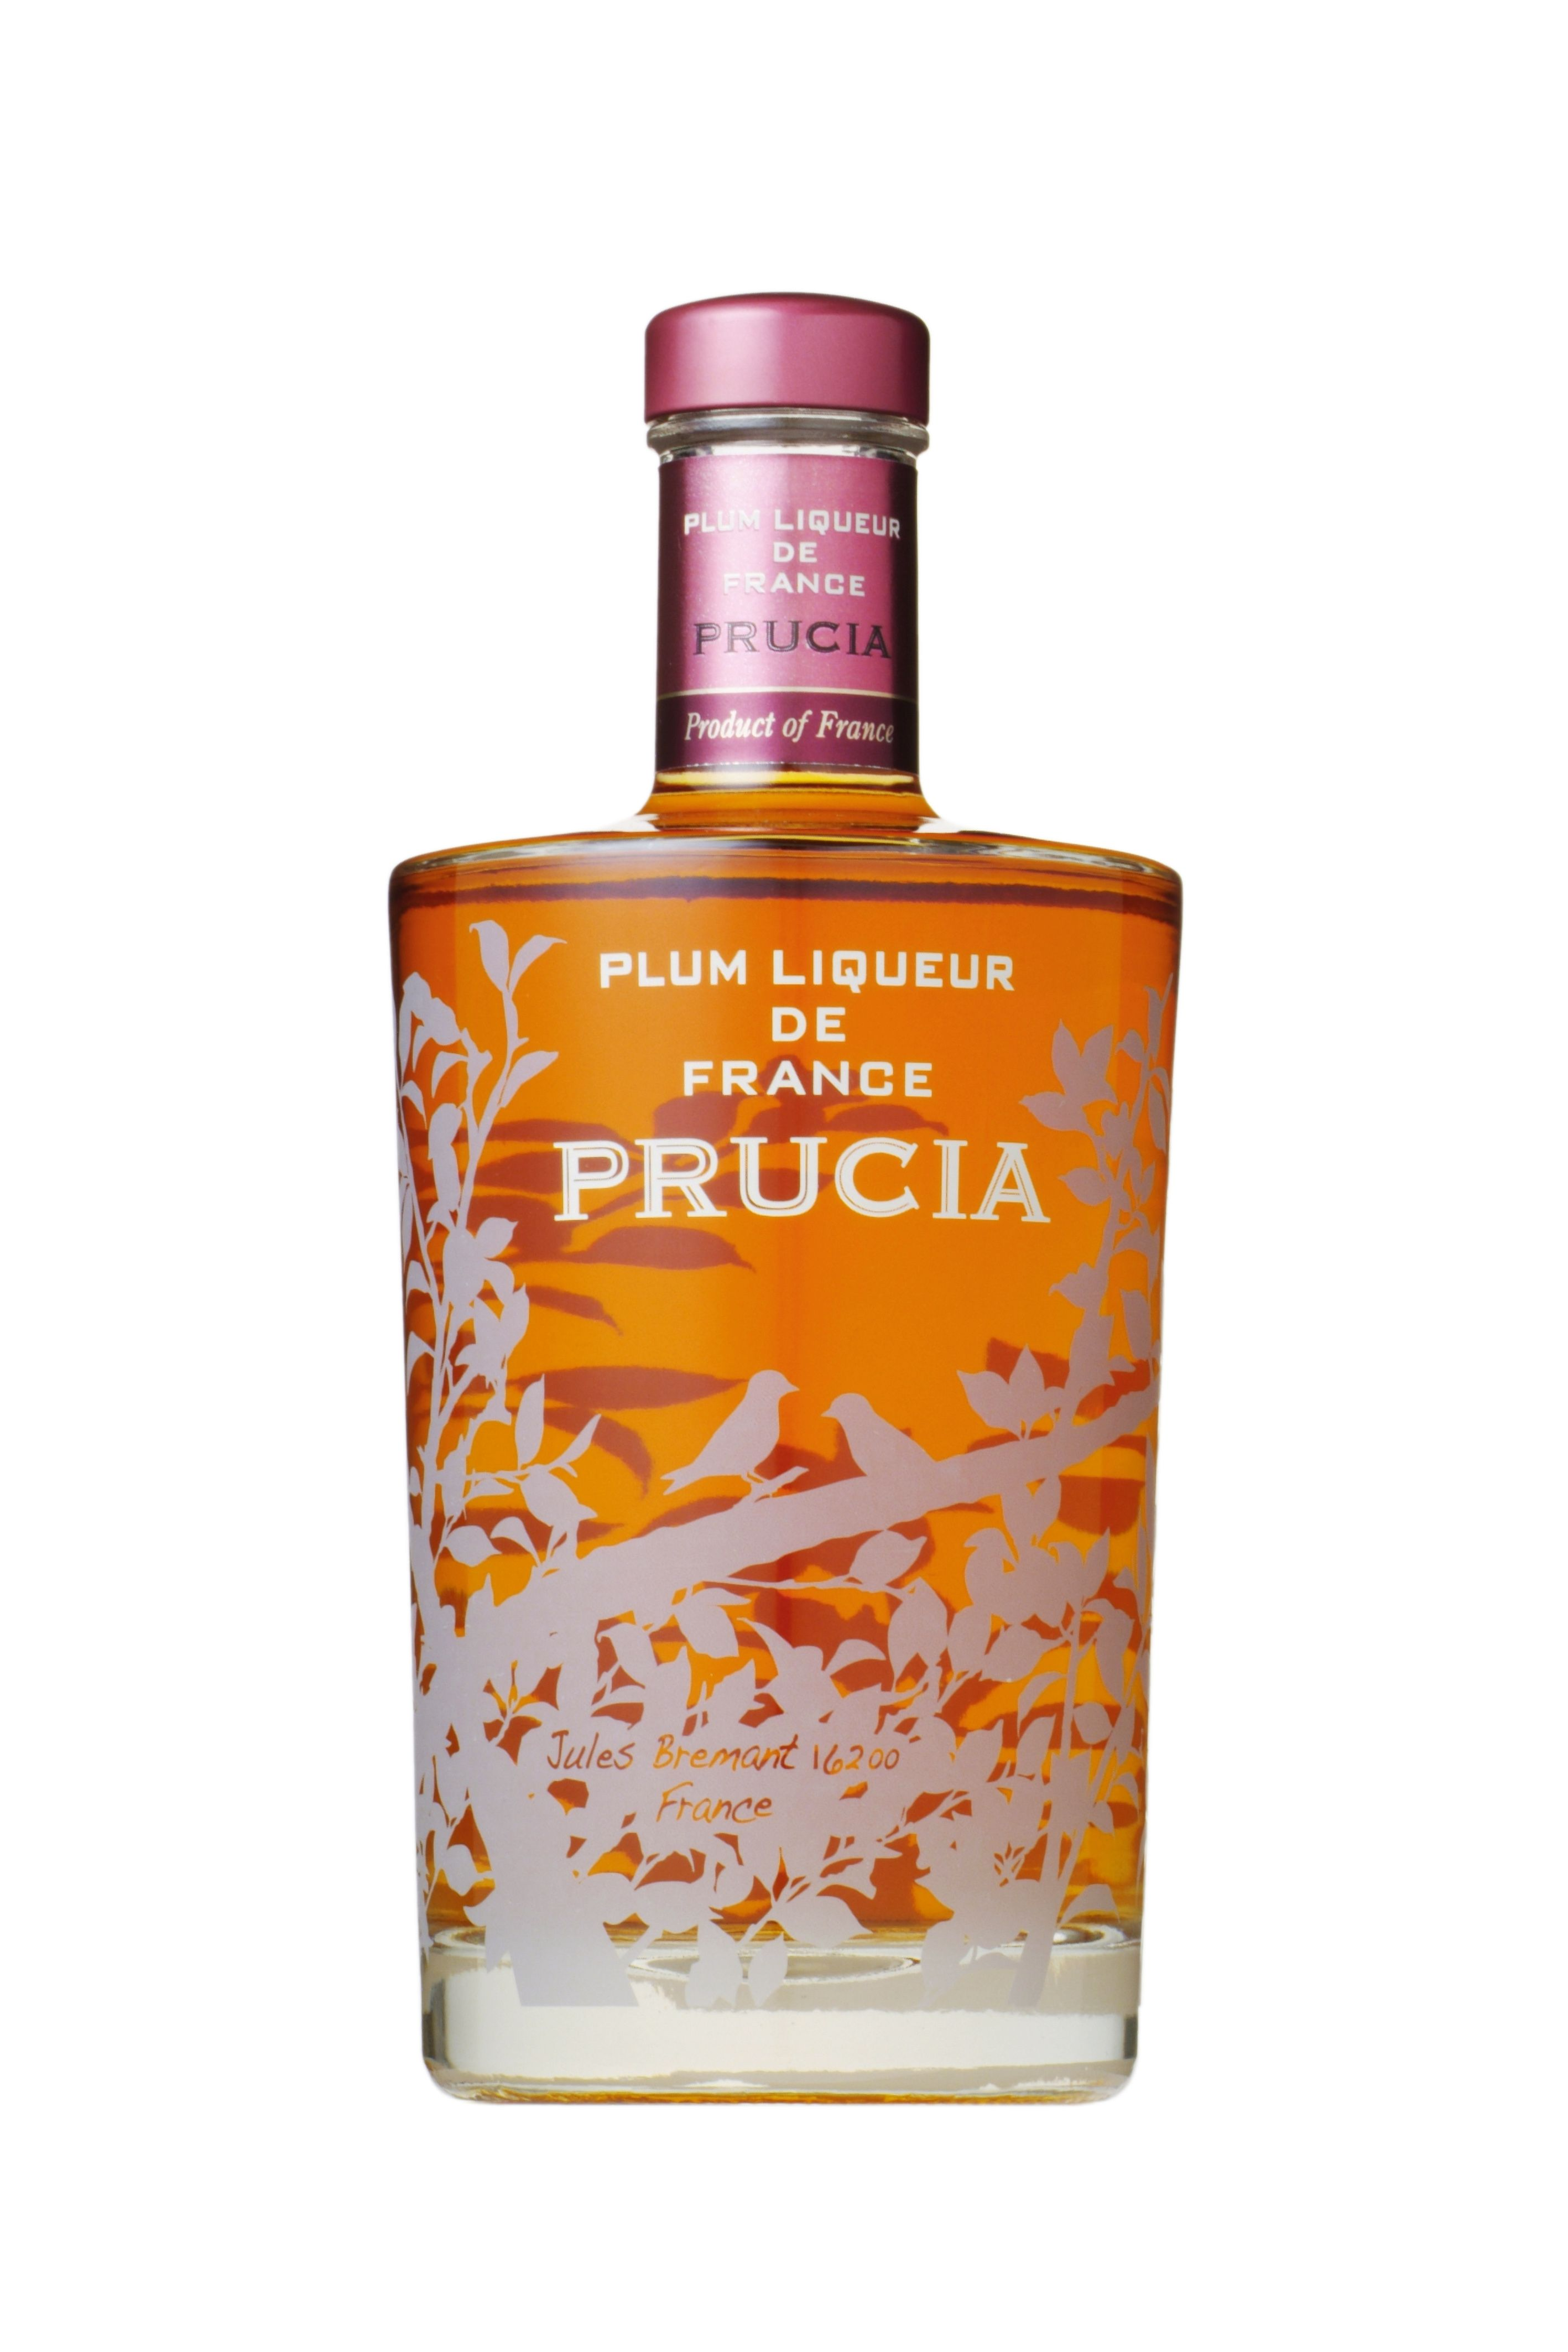 Prucia 70cl Plum Liqueur De France A Fusion Of Japanese And French Culture Matured To Perfection This Is A Harmonious Blend With The Plum Wine Liqueur Bottle